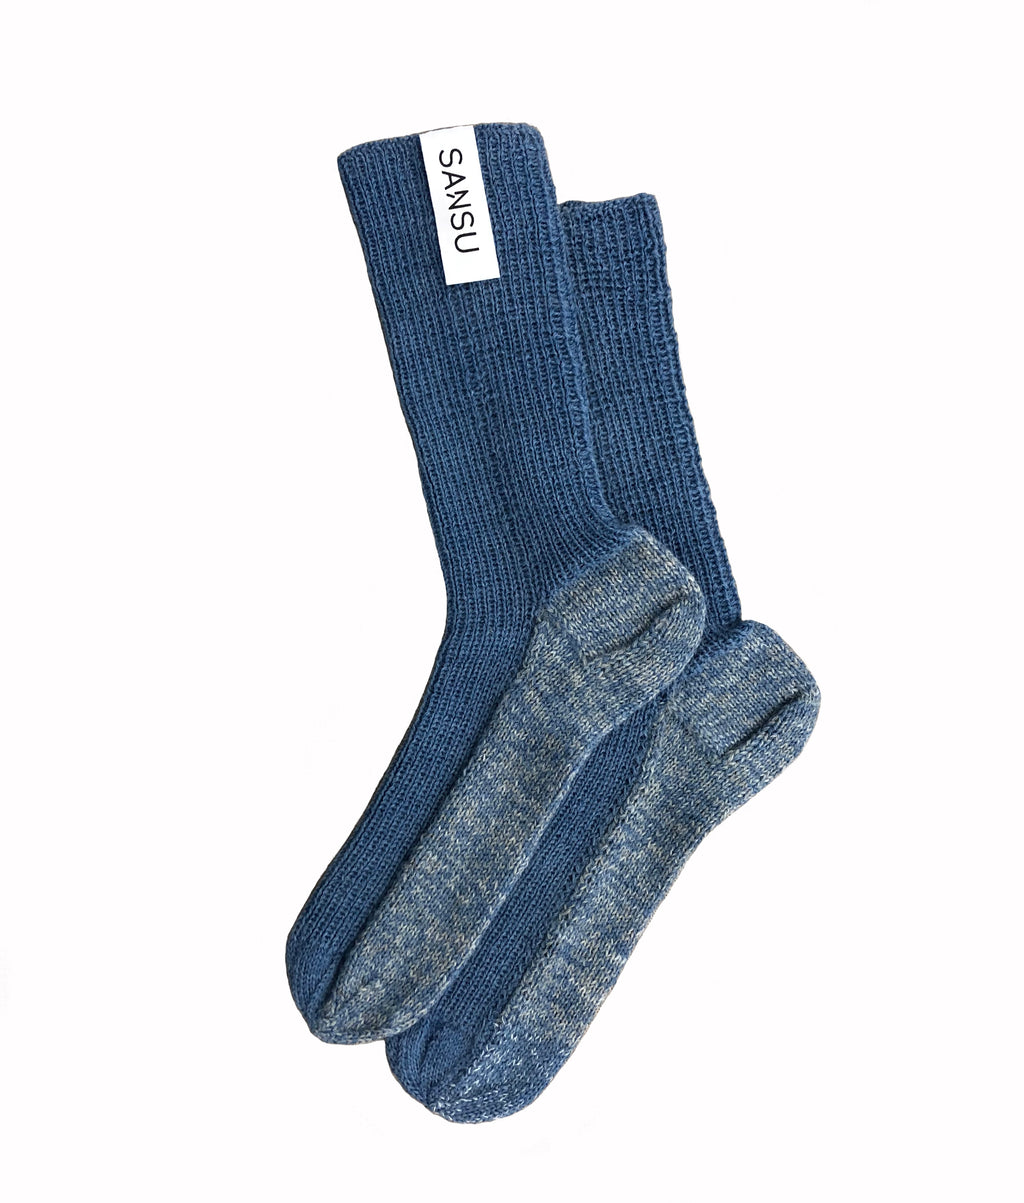 Lise Wool Socks